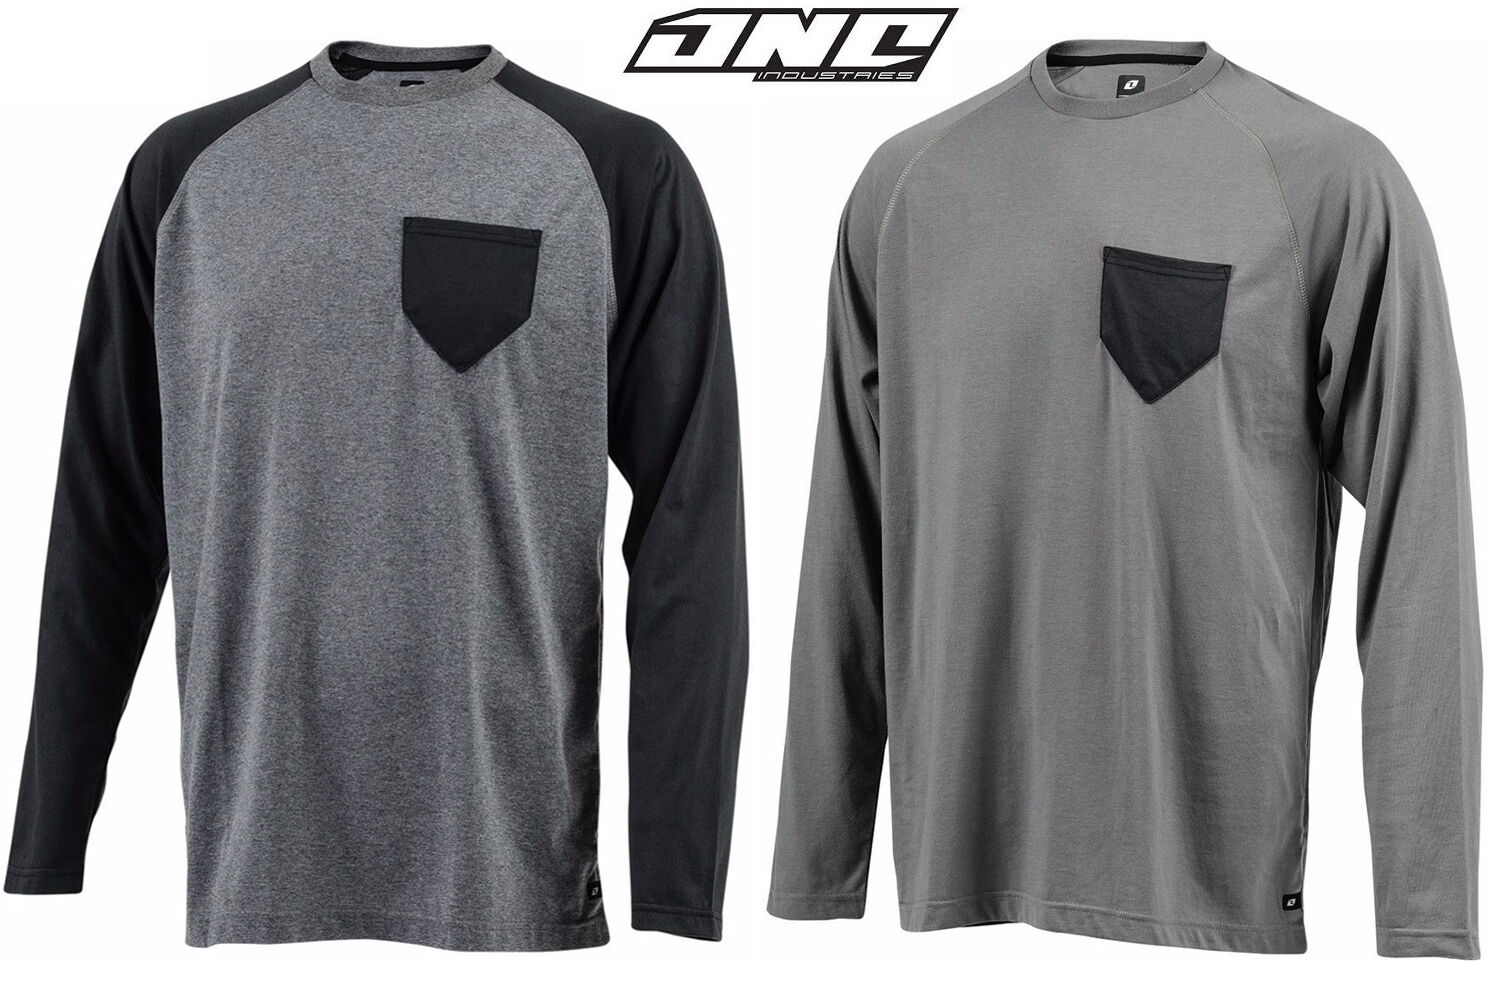 ONE INDUSTRIES MEN'S TECH TEE T-SHIRT LONG SLEEVE adult moto